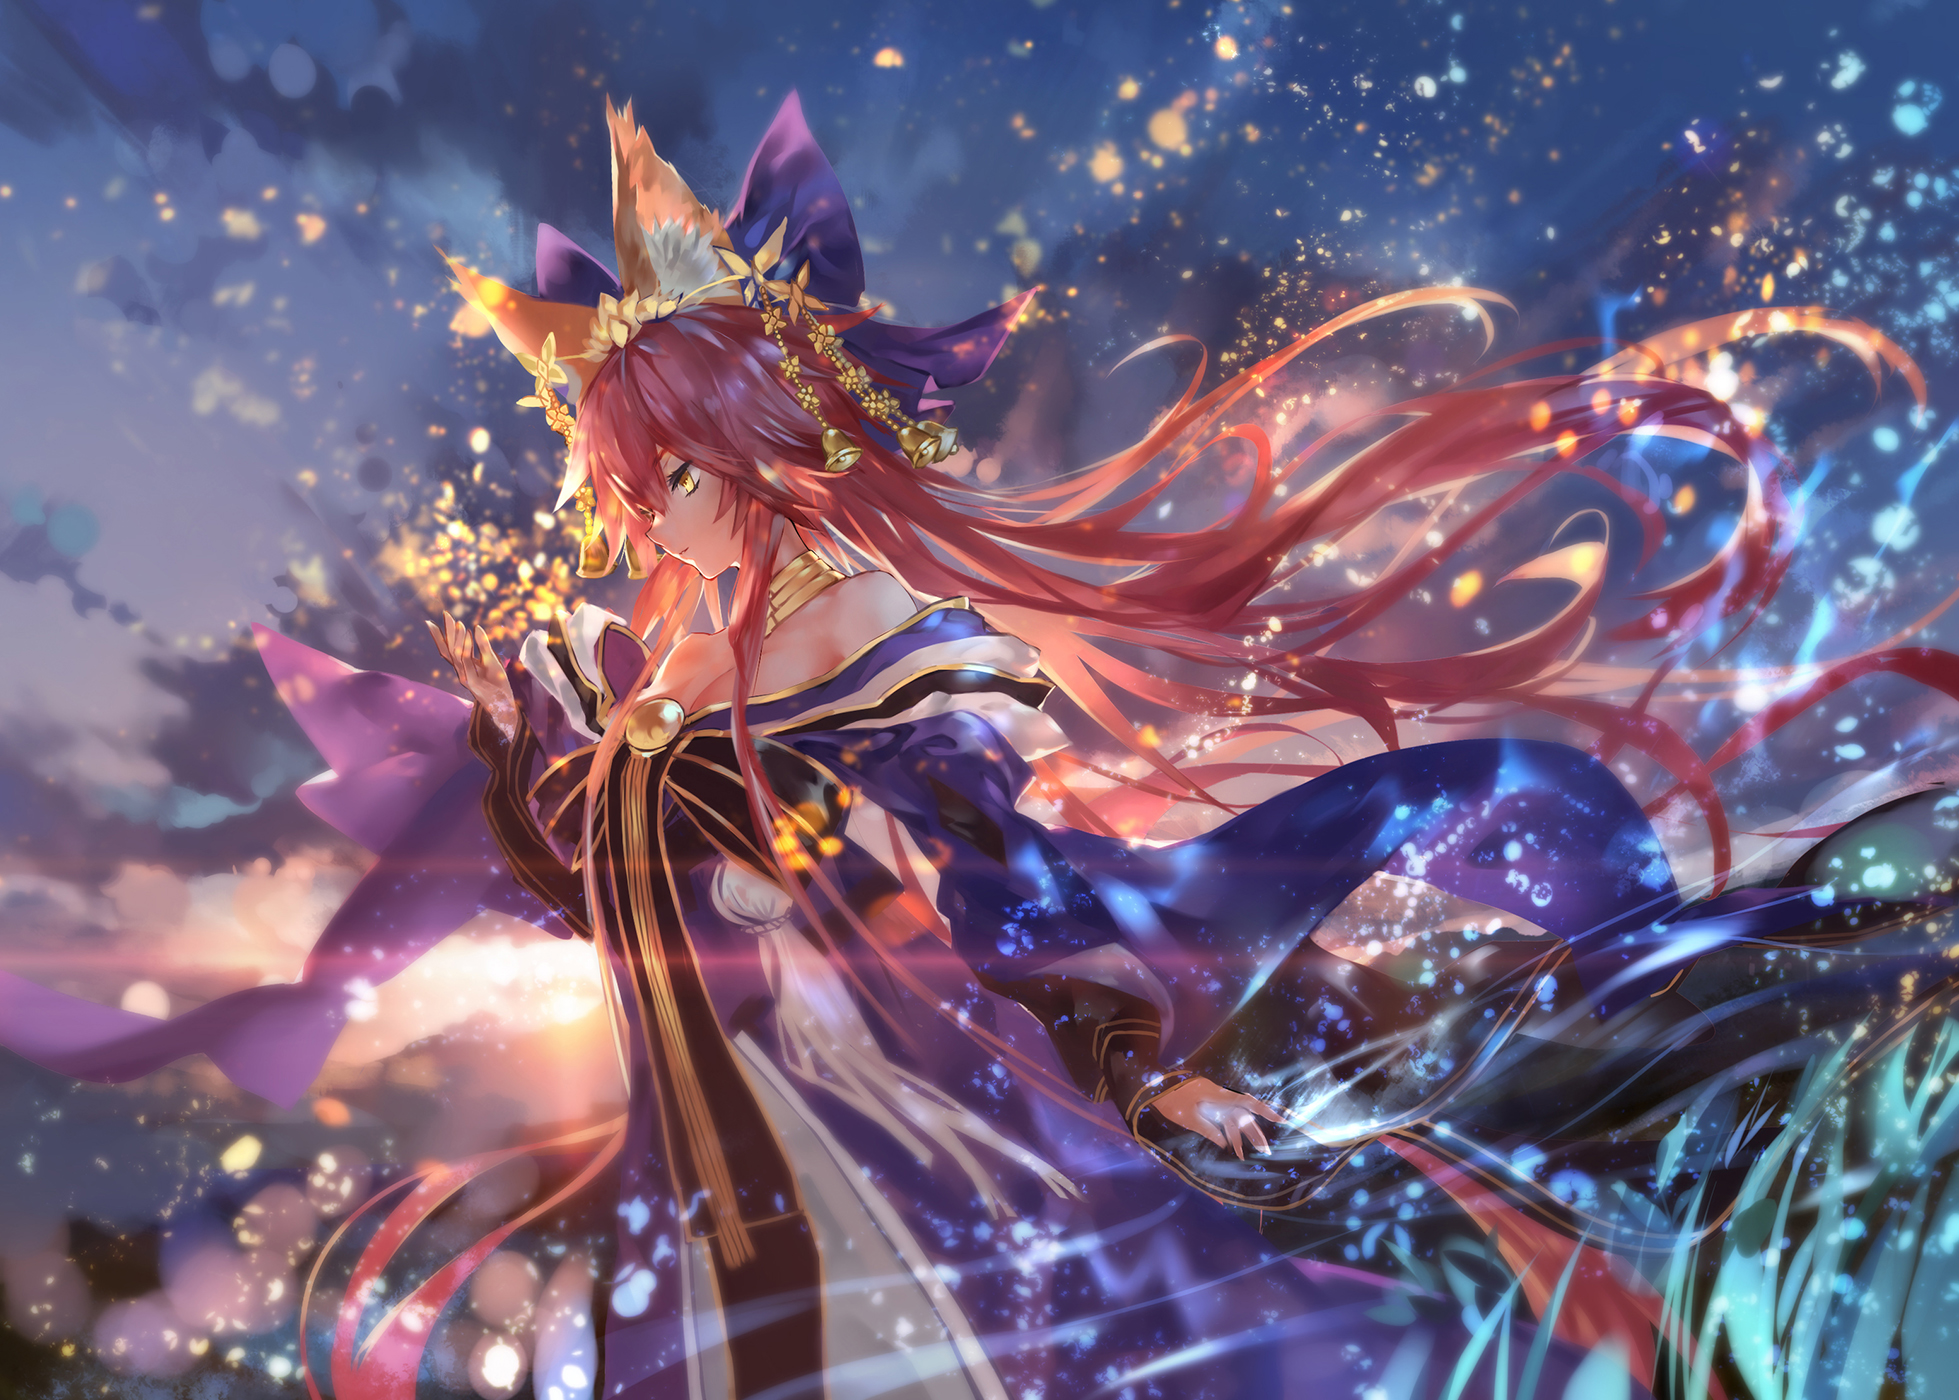 38 Tamamo No Mae Fate Grand Order Hd Wallpapers Background